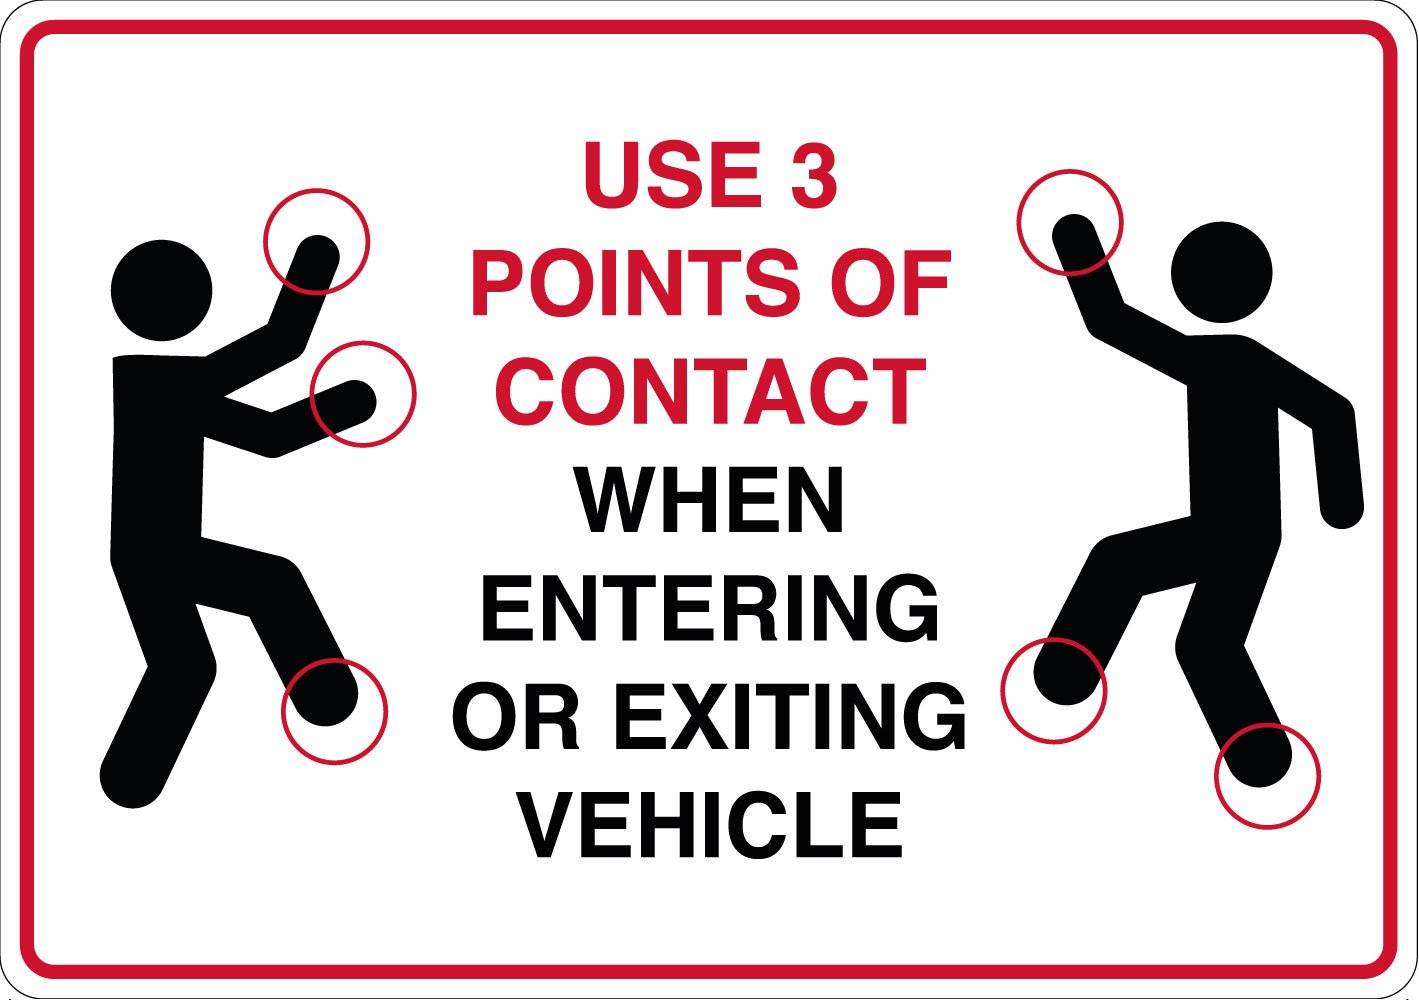 Use 3 points of contact when entering or exiting vehicle - Brug kontaktpunkter skilt